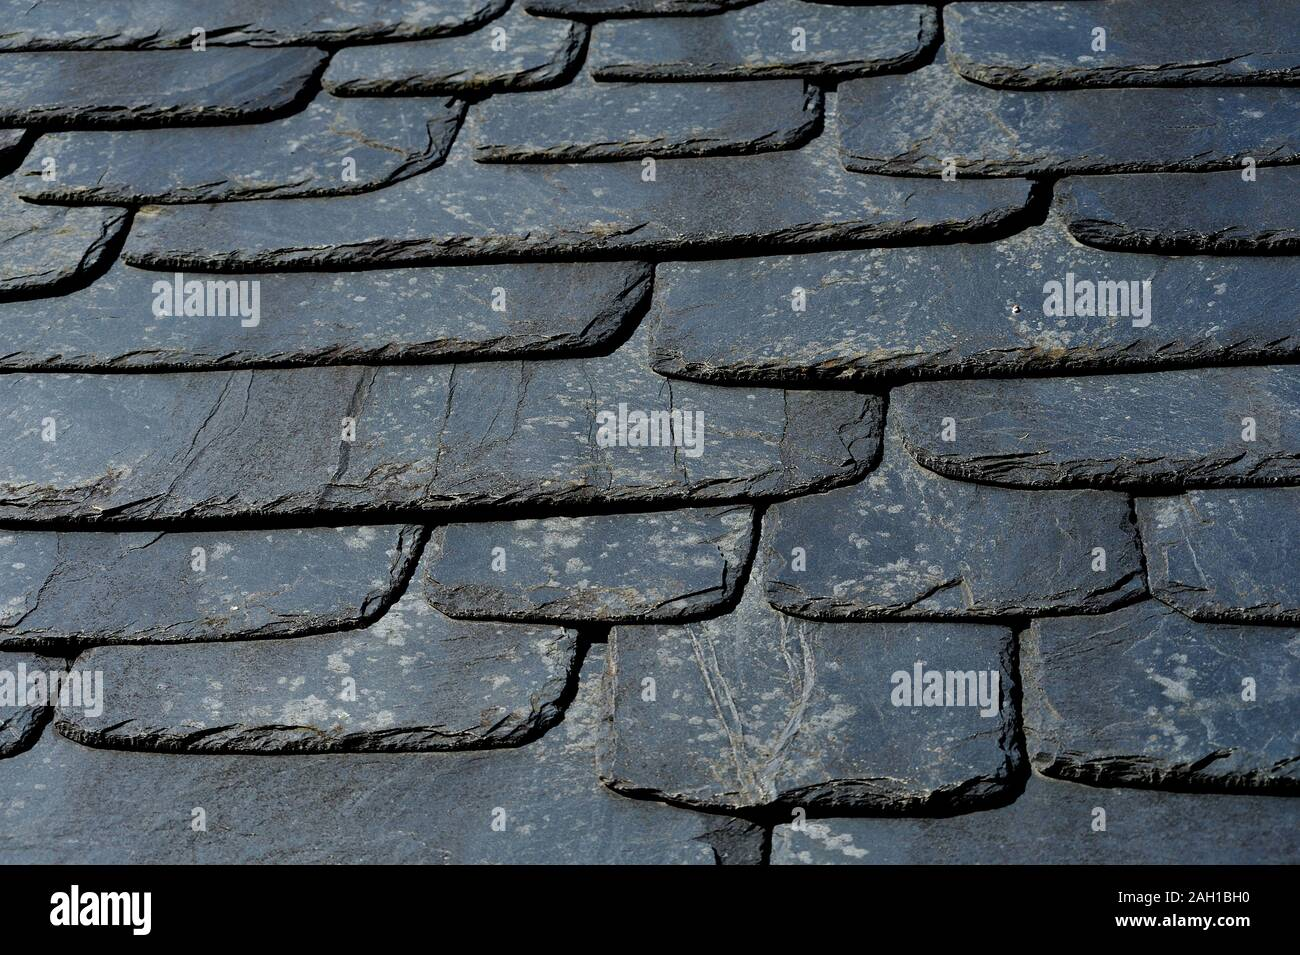 Rustic black slate roof texture. Stock Photo